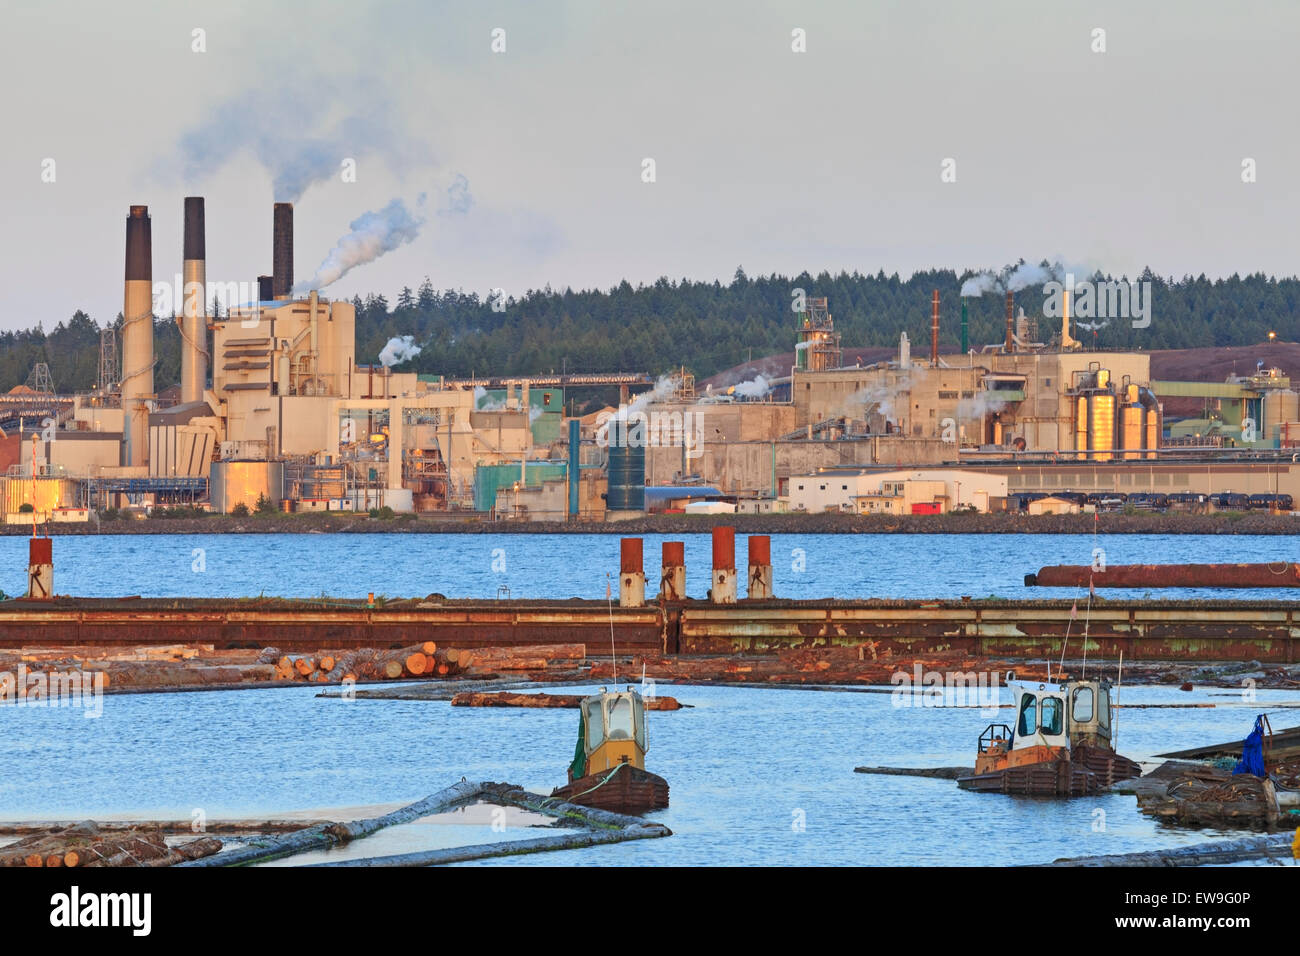 Pulp Mills On Vancouver Island